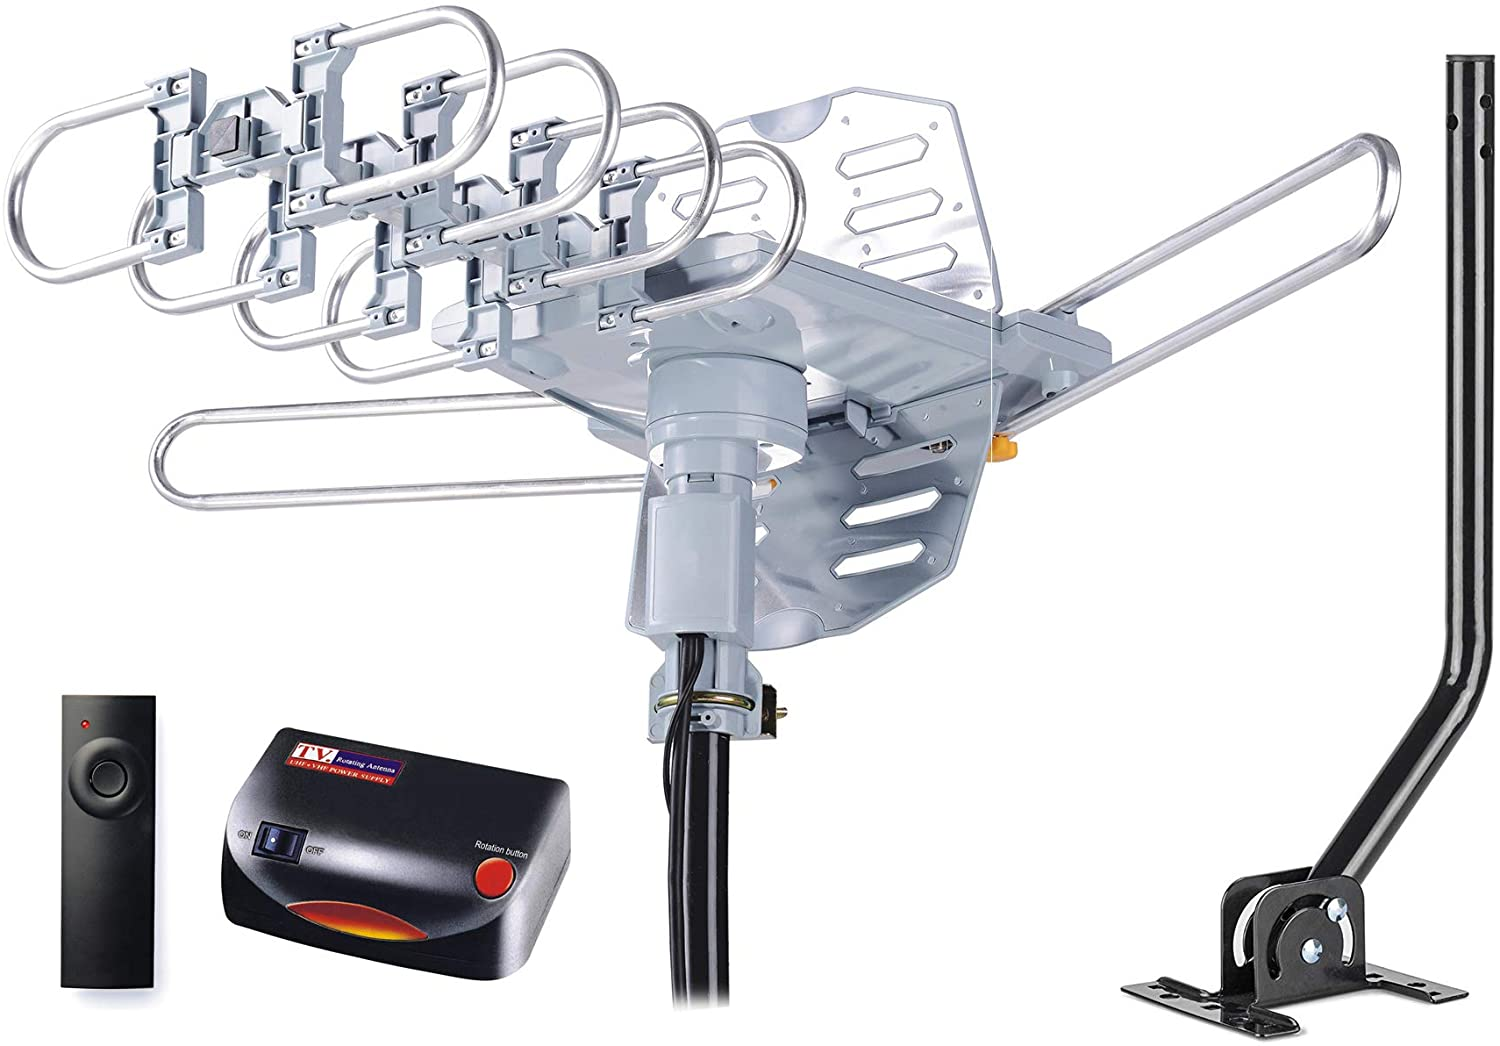 pingbingding PBD WA-2608 Digital Amplified Outdoor HDTV Antenna